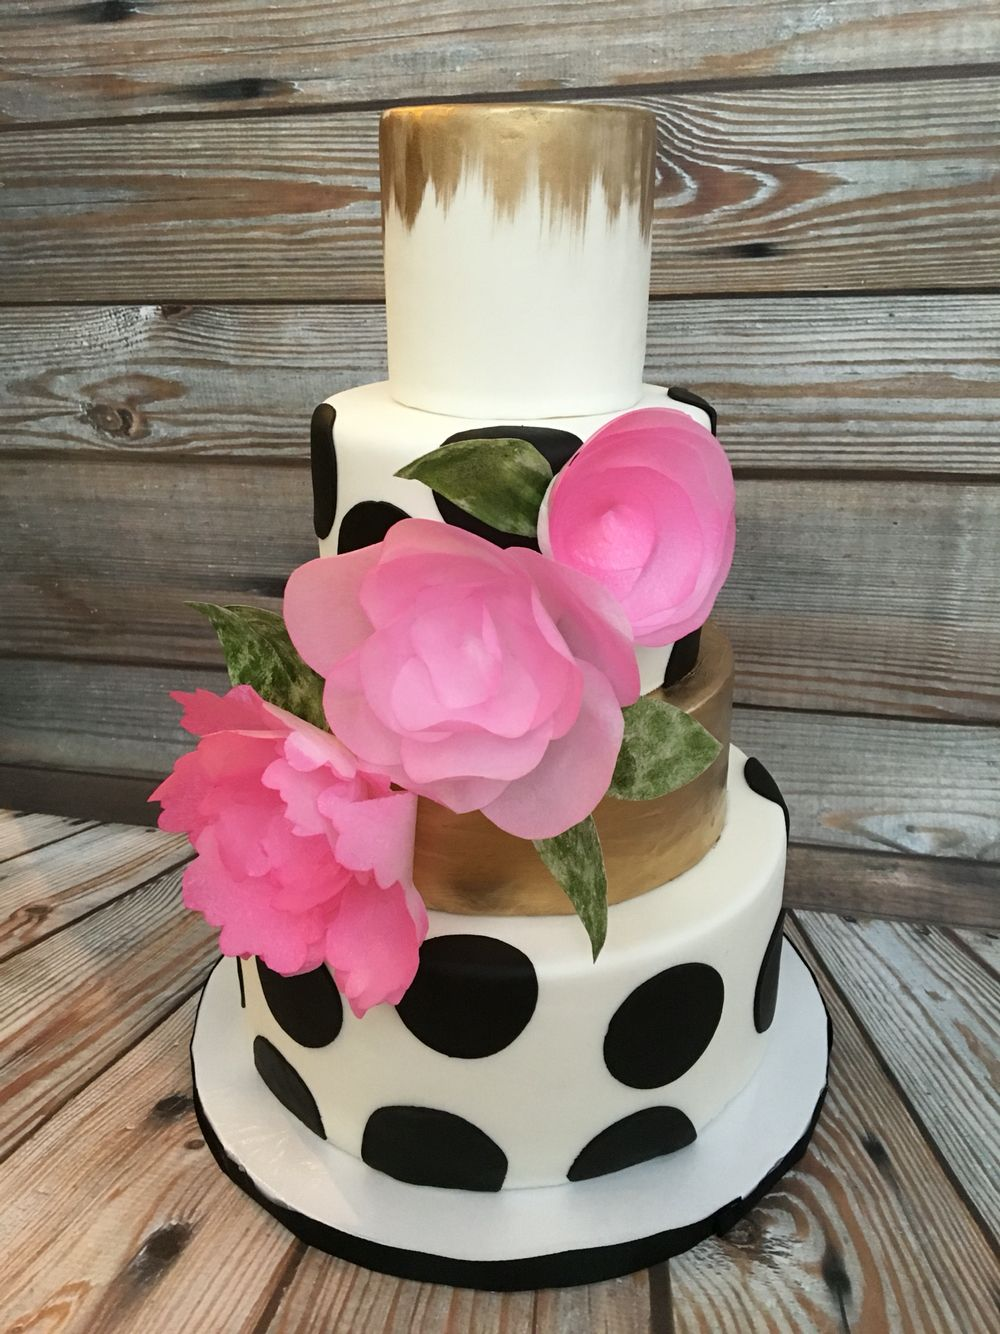 Kate spade inspired cake made by something sweet by flo black and kate spade inspired cake made by something sweet by flo black and white cake wafer dhlflorist Image collections